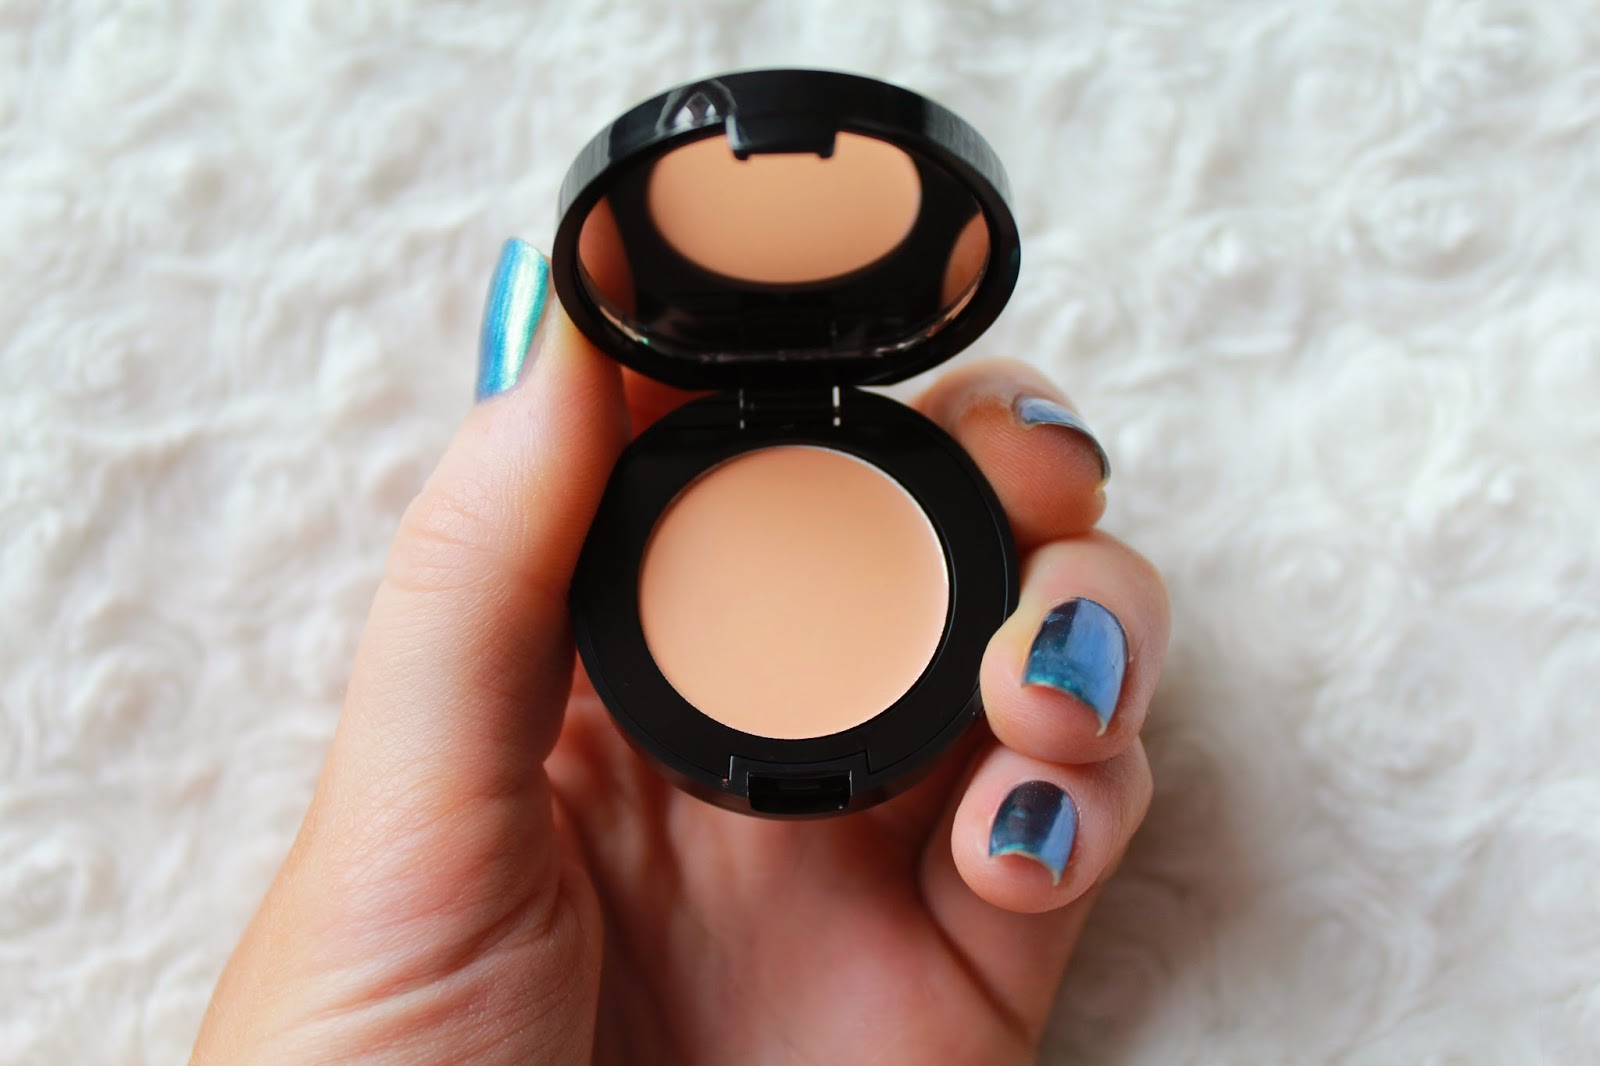 Bobbi Brown Colour Corrector in Light Peach